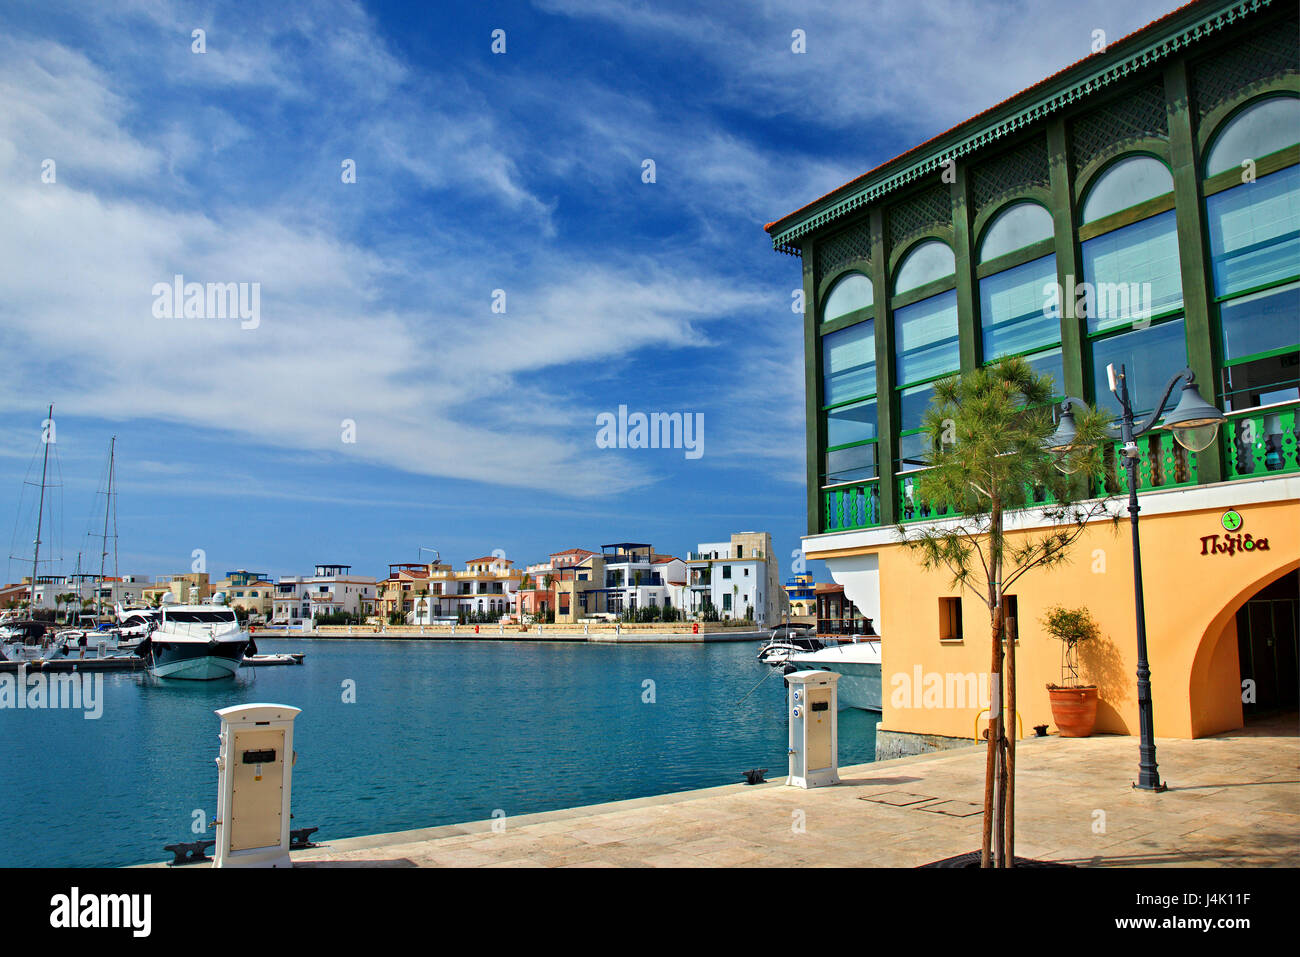 At the New Marina of Limassol ('Lemessos') town, Cyprus. - Stock Image